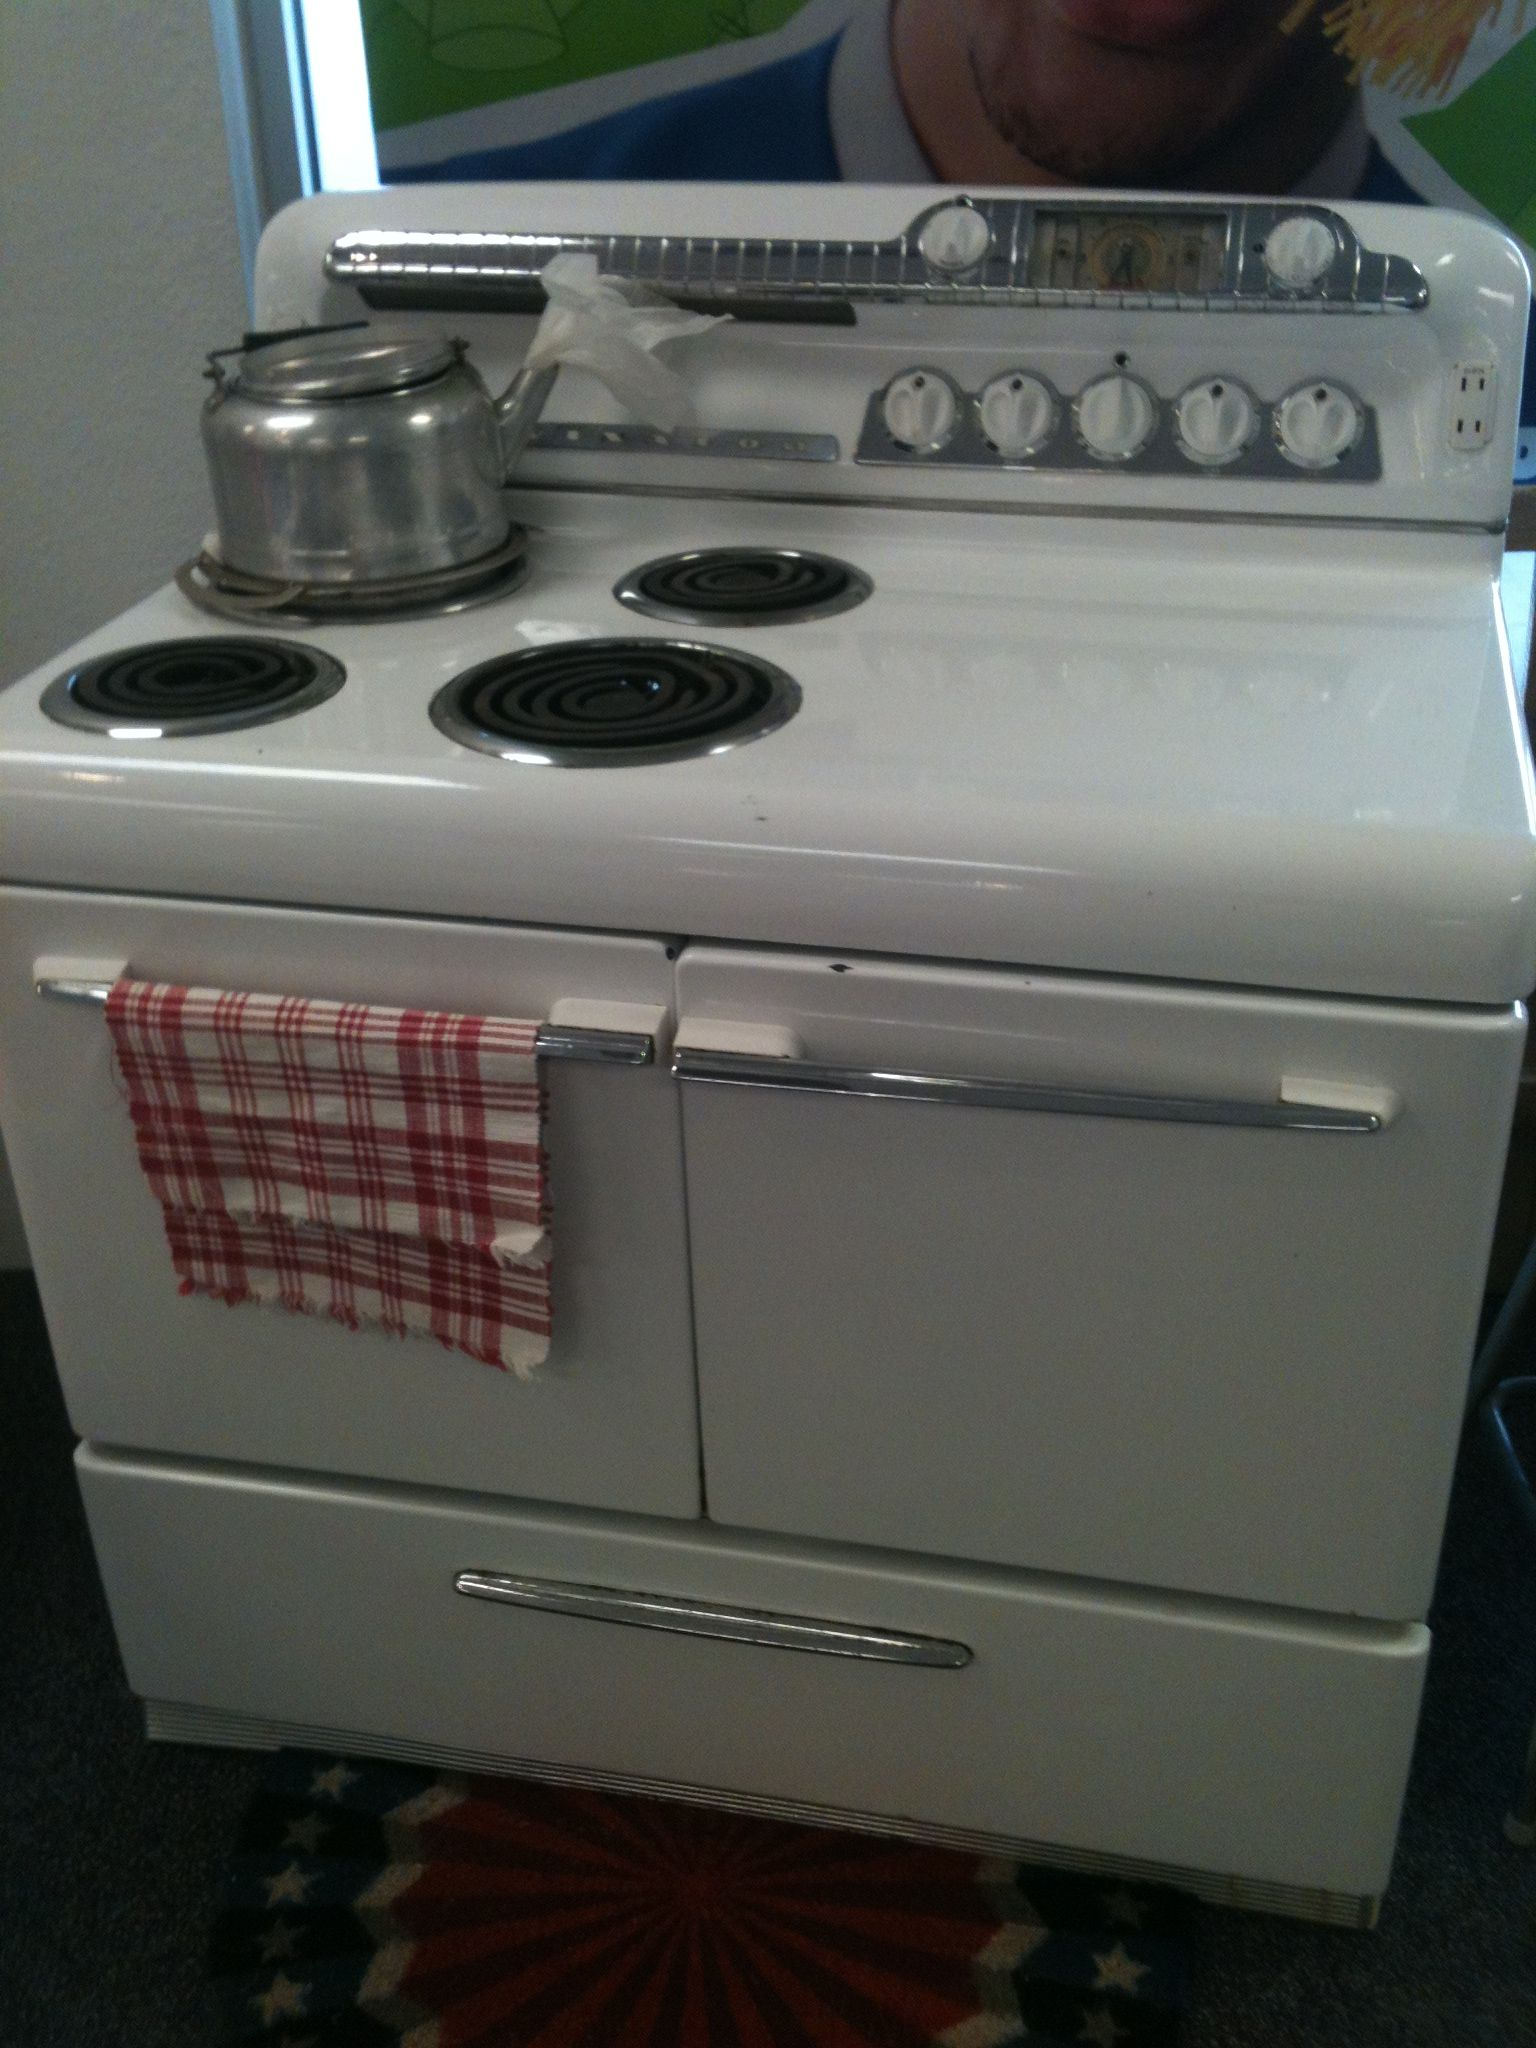 1950s Kelvinator Range Cook Stove For Sale 350 Makes A Great Store Display